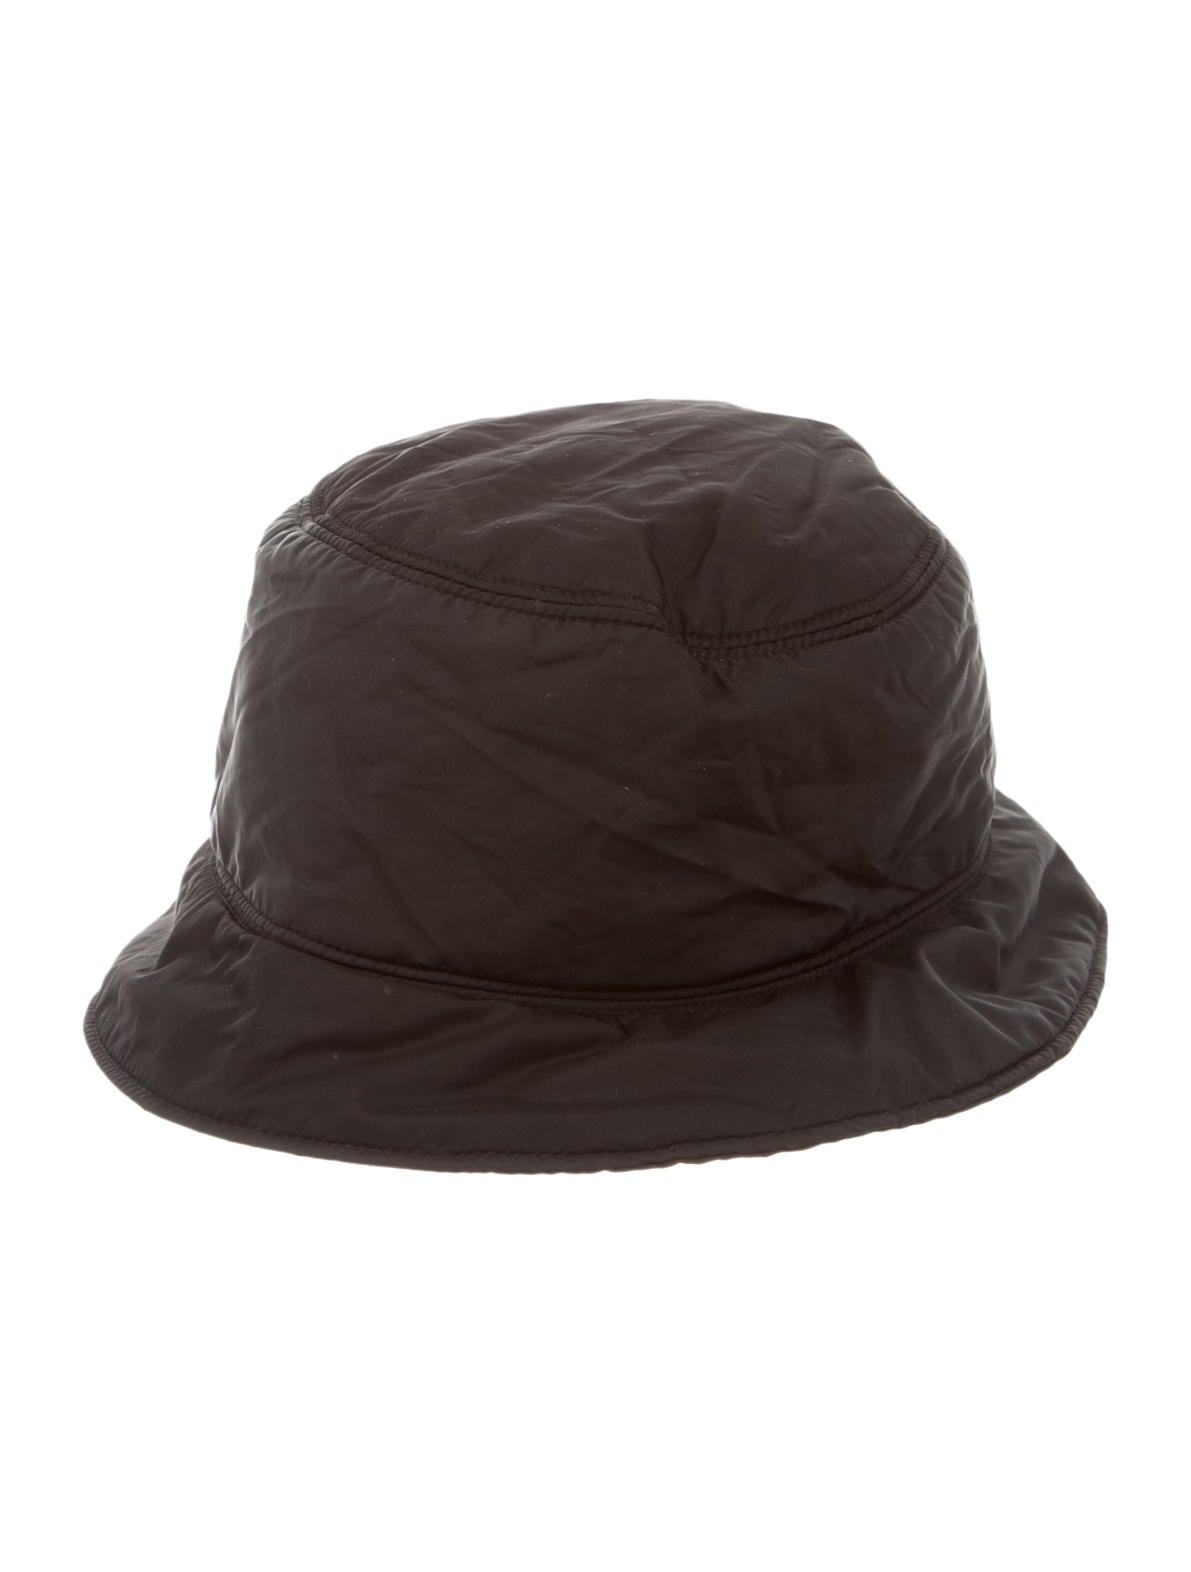 bb9ecc104cf Prada Sport Bucket Hat - Accessories - WPR28552